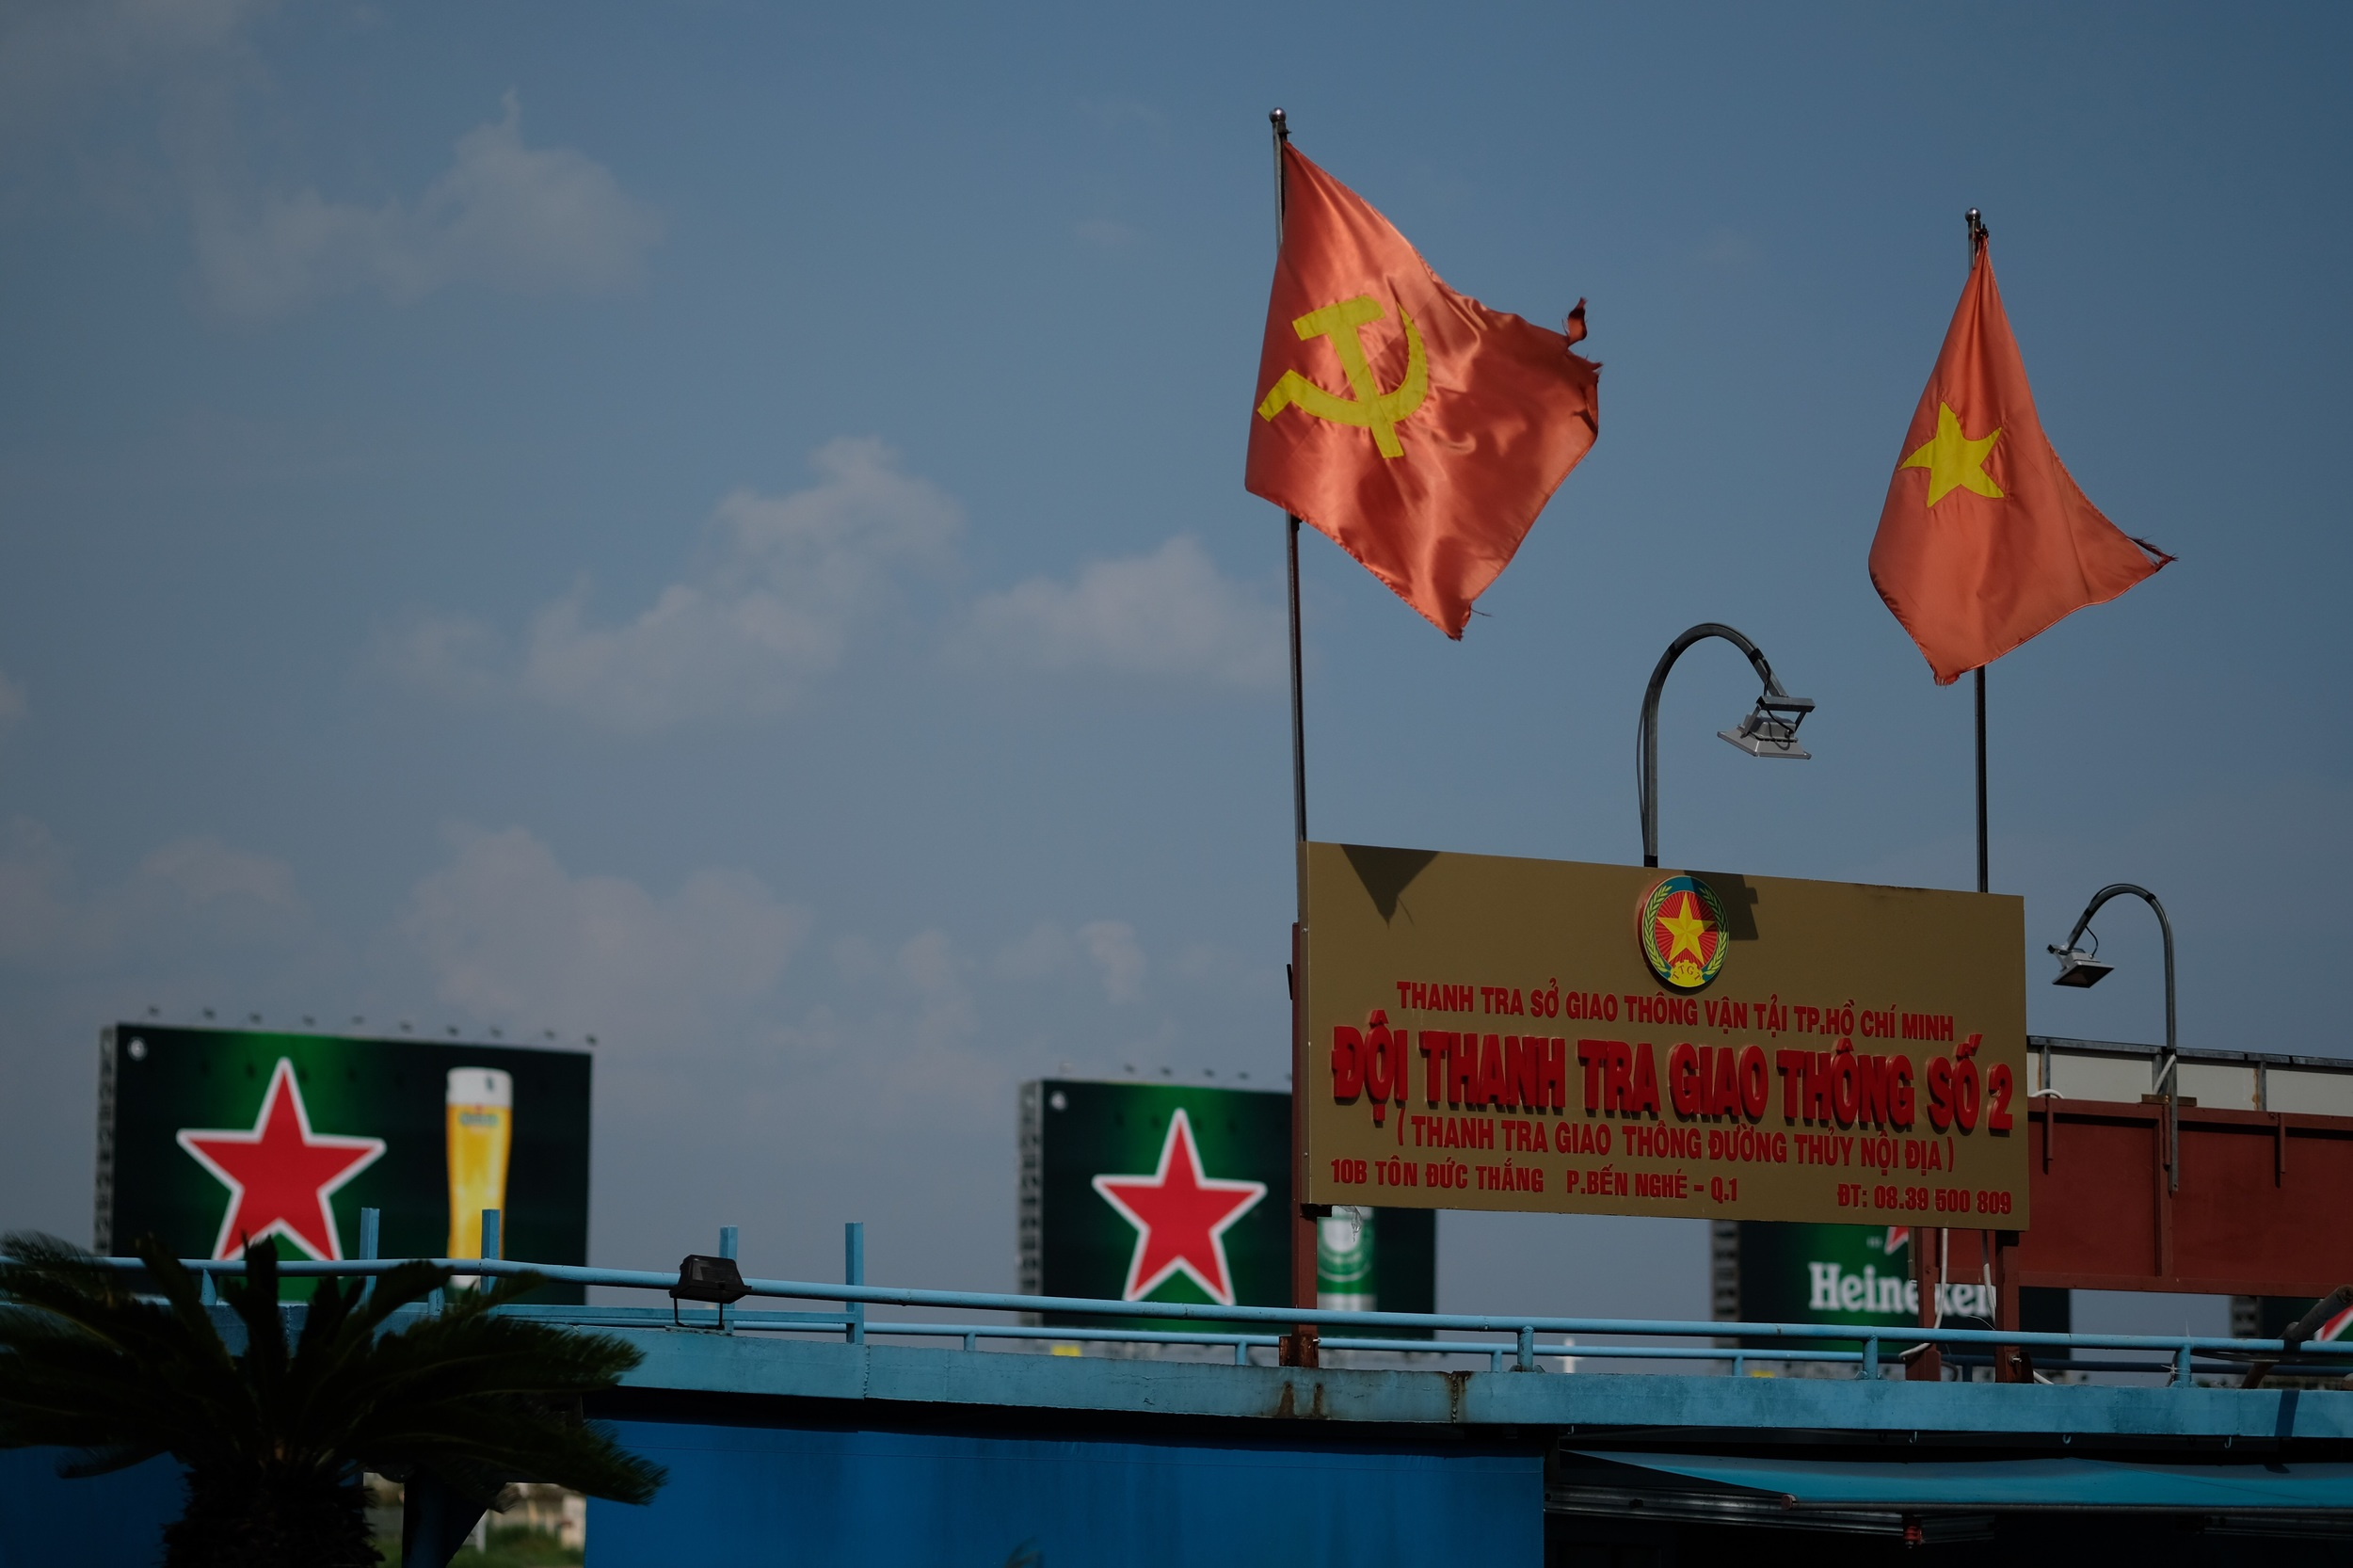 Stars on flags, stars on billboards - an odd mix of capitalist and socialist propaganda is present all over the city.